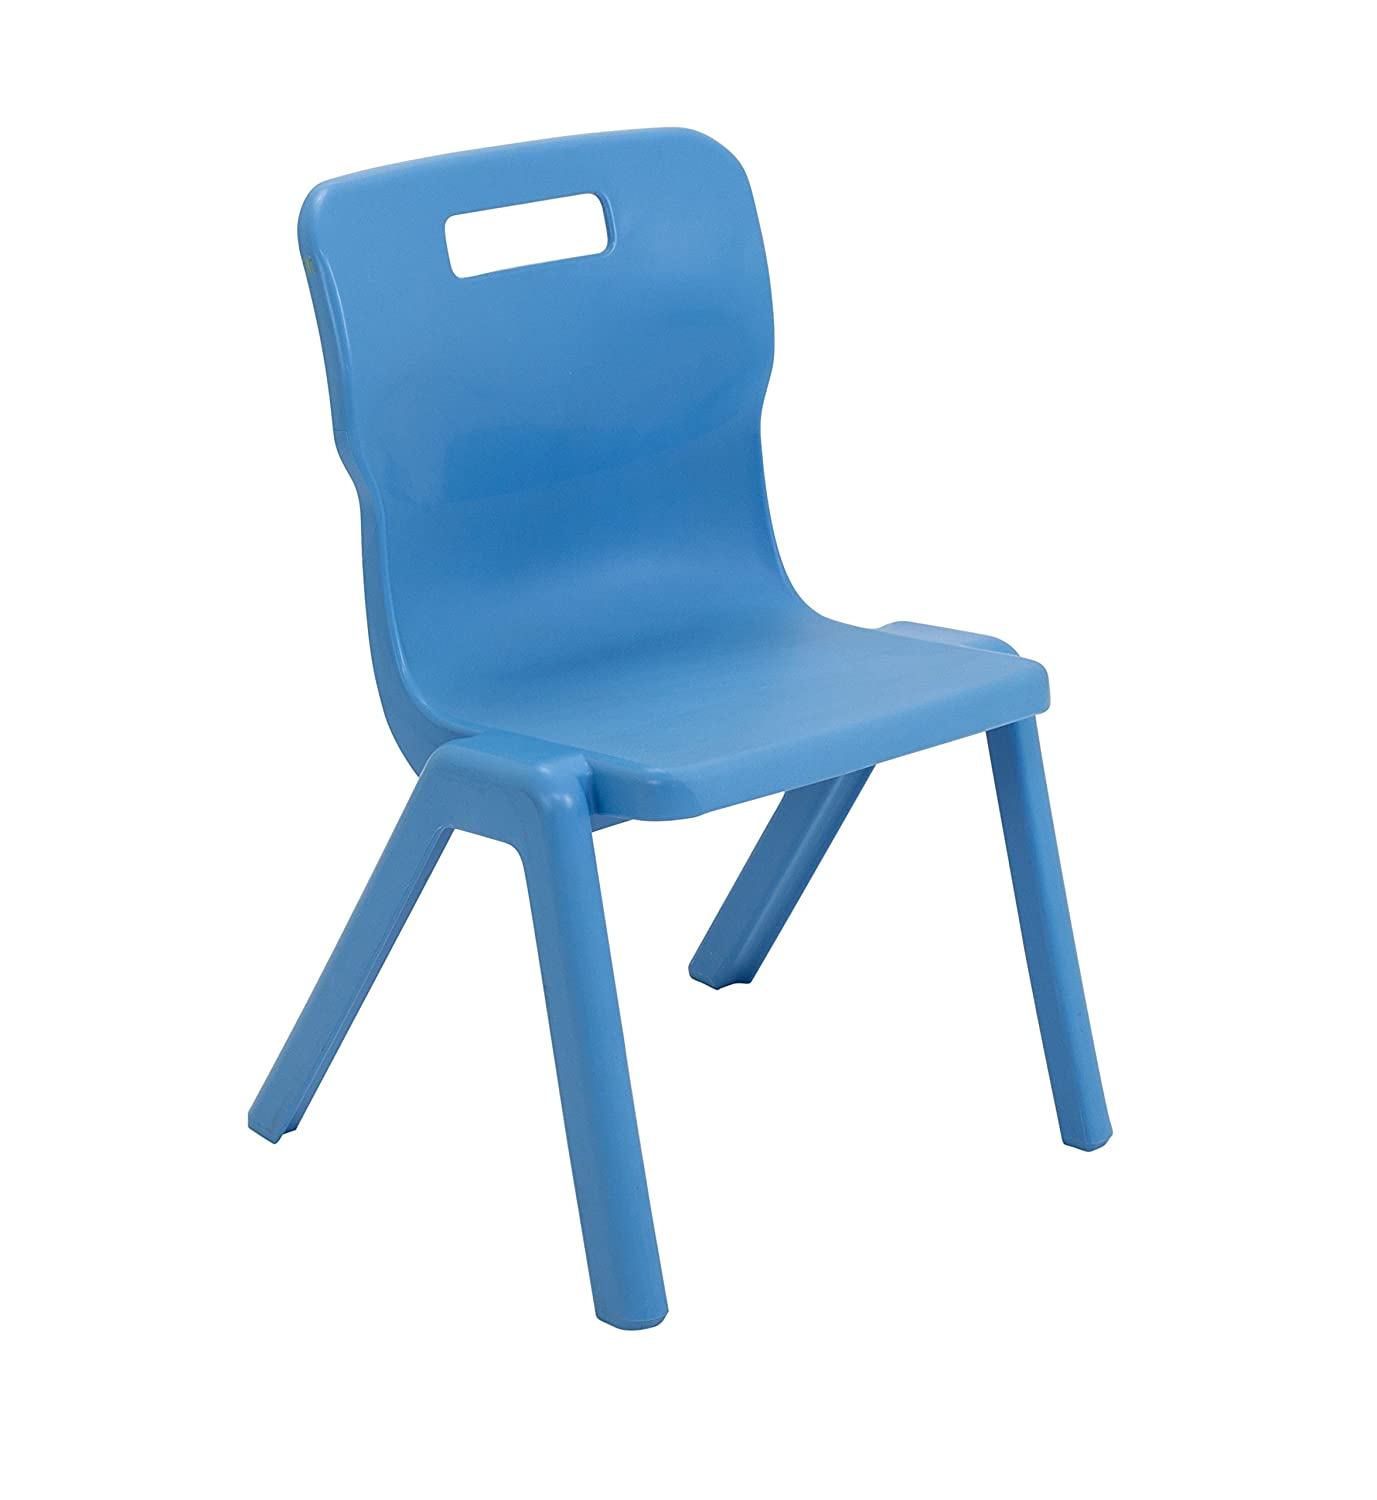 Sky Blue Ages 5-7 Years Titan One Piece Classroom Chair Size 3 Plastic